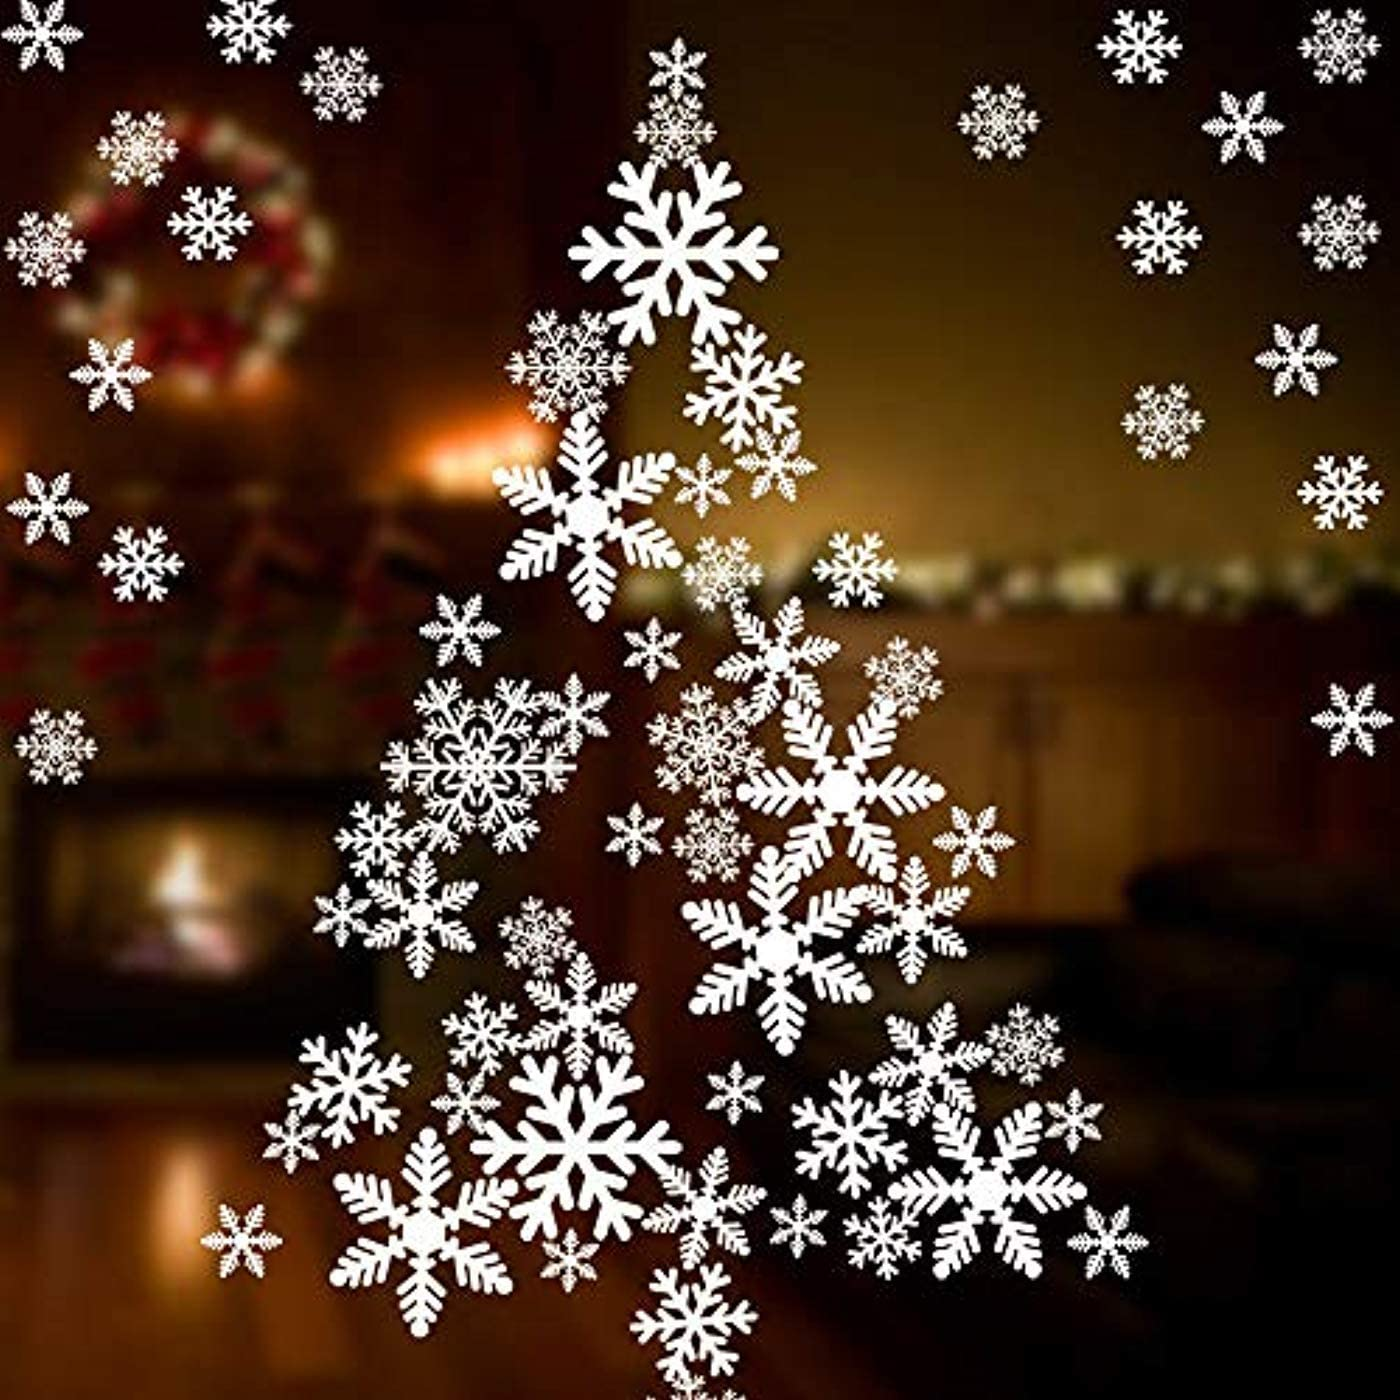 Christmas Gifts Vinyl Mural Snow Flakes Window Stickers Wall Art Decals LP